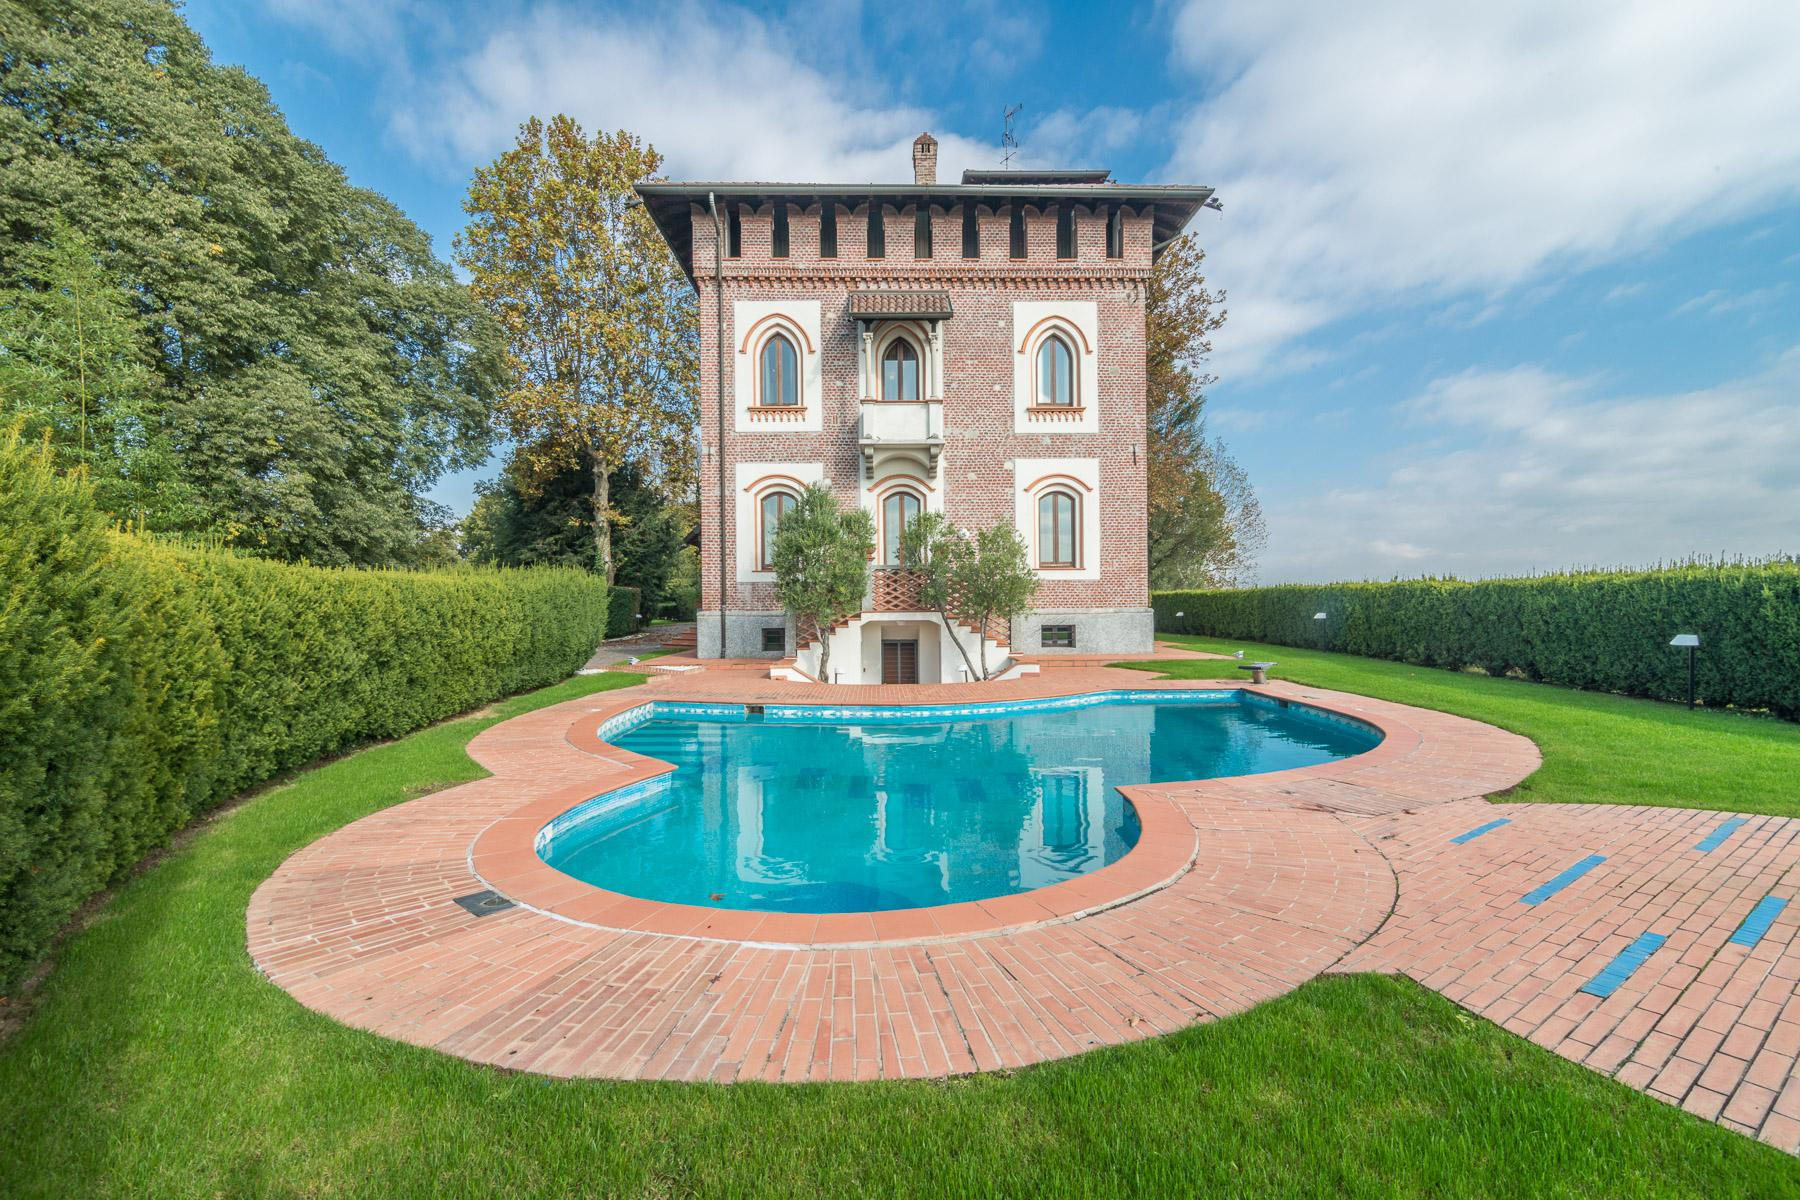 Pretigious historical villa close to Milan - 2